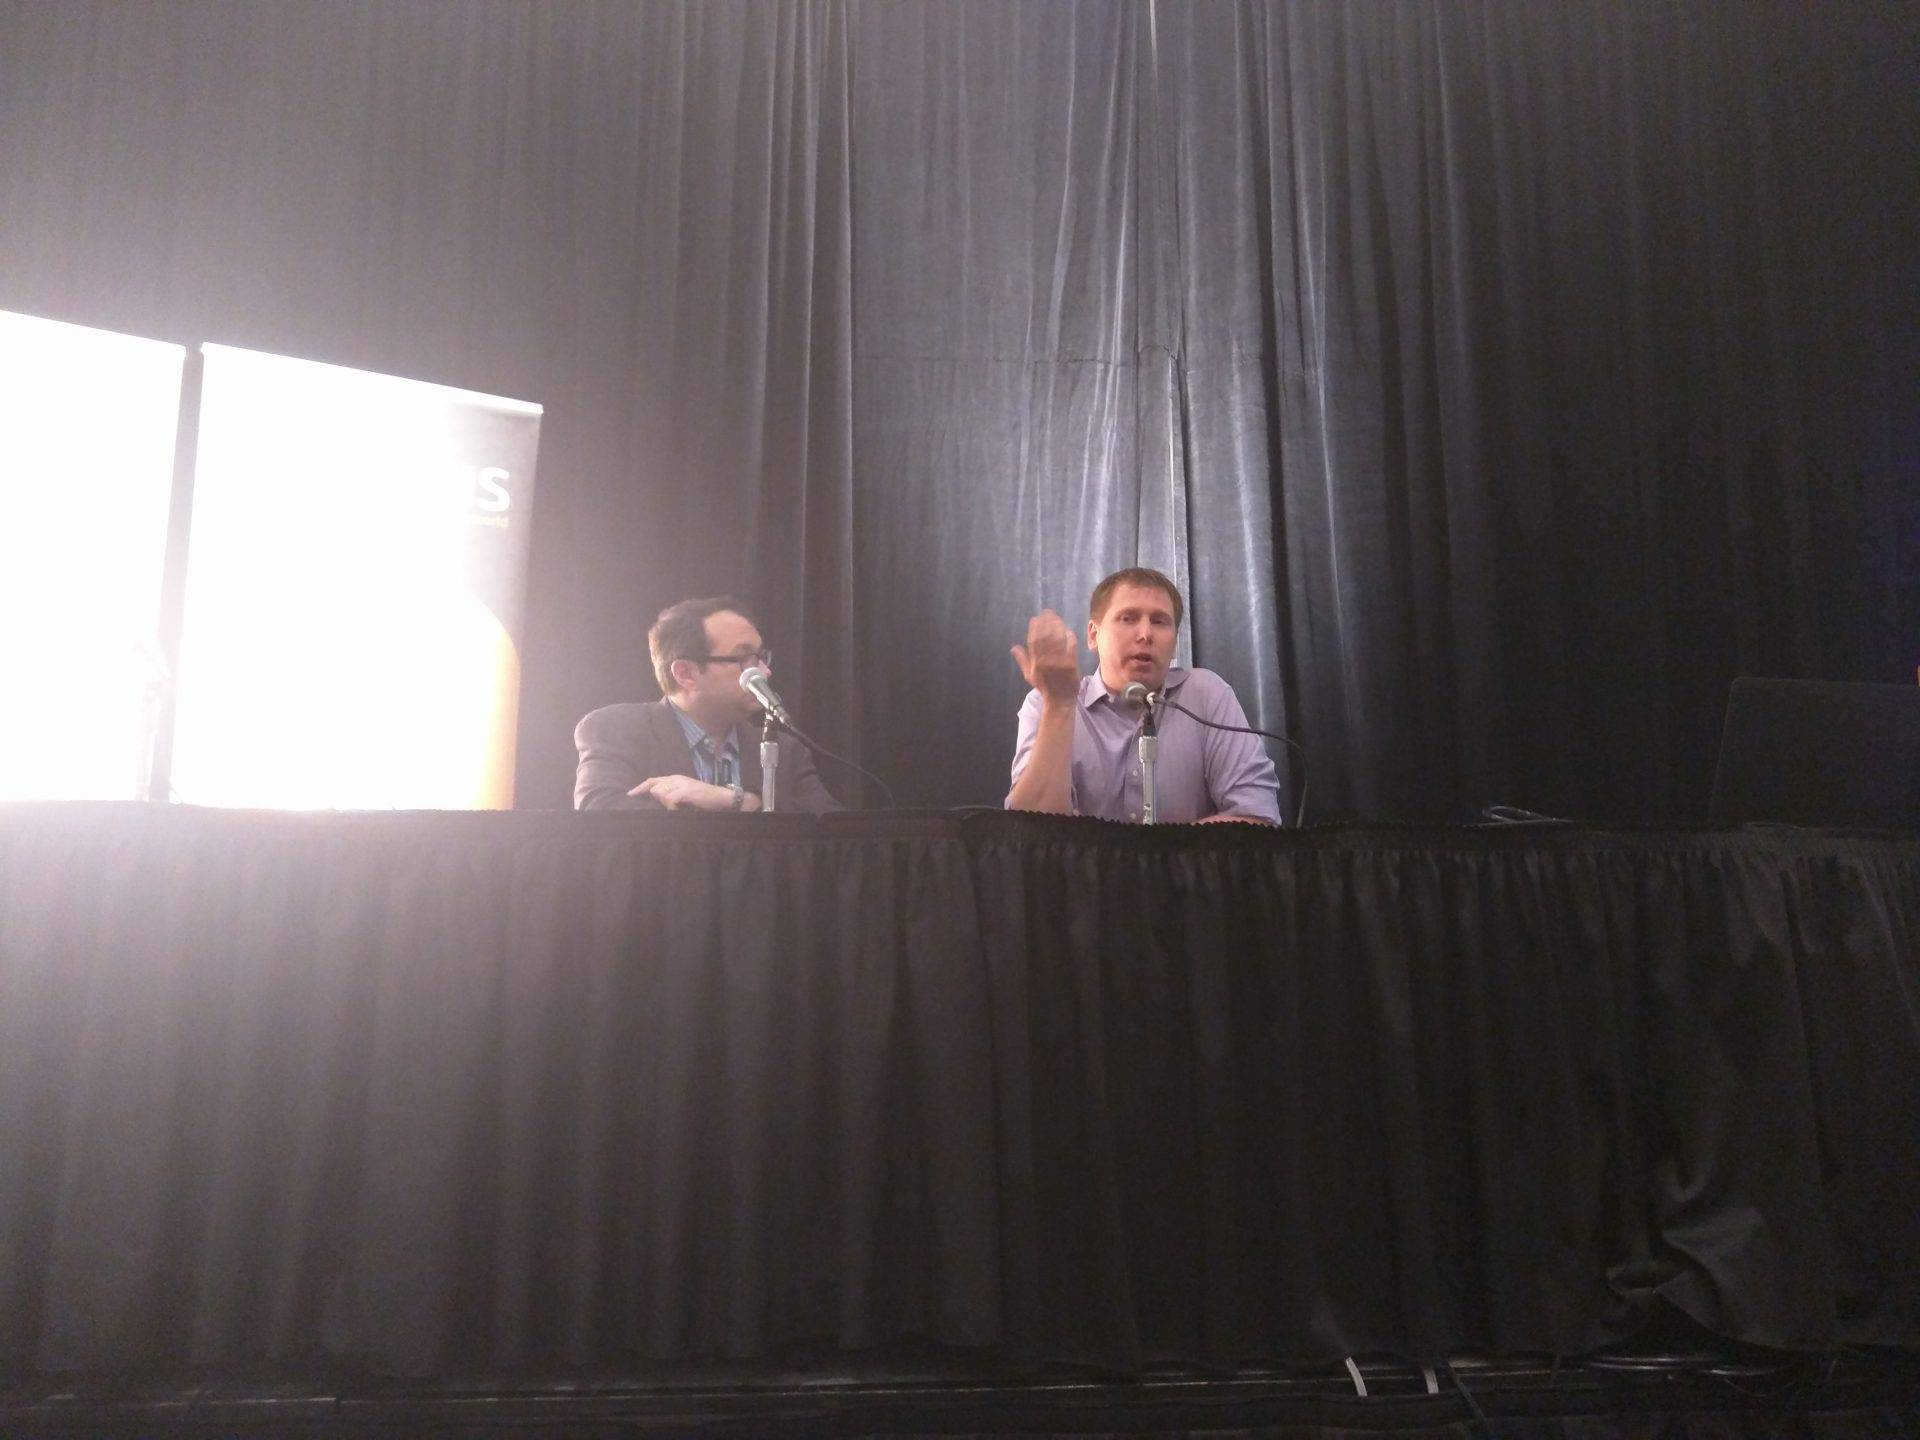 Bitcoin vs Blockchain: Barry Silbert Weighs-in at Inside Bitcoins NYC